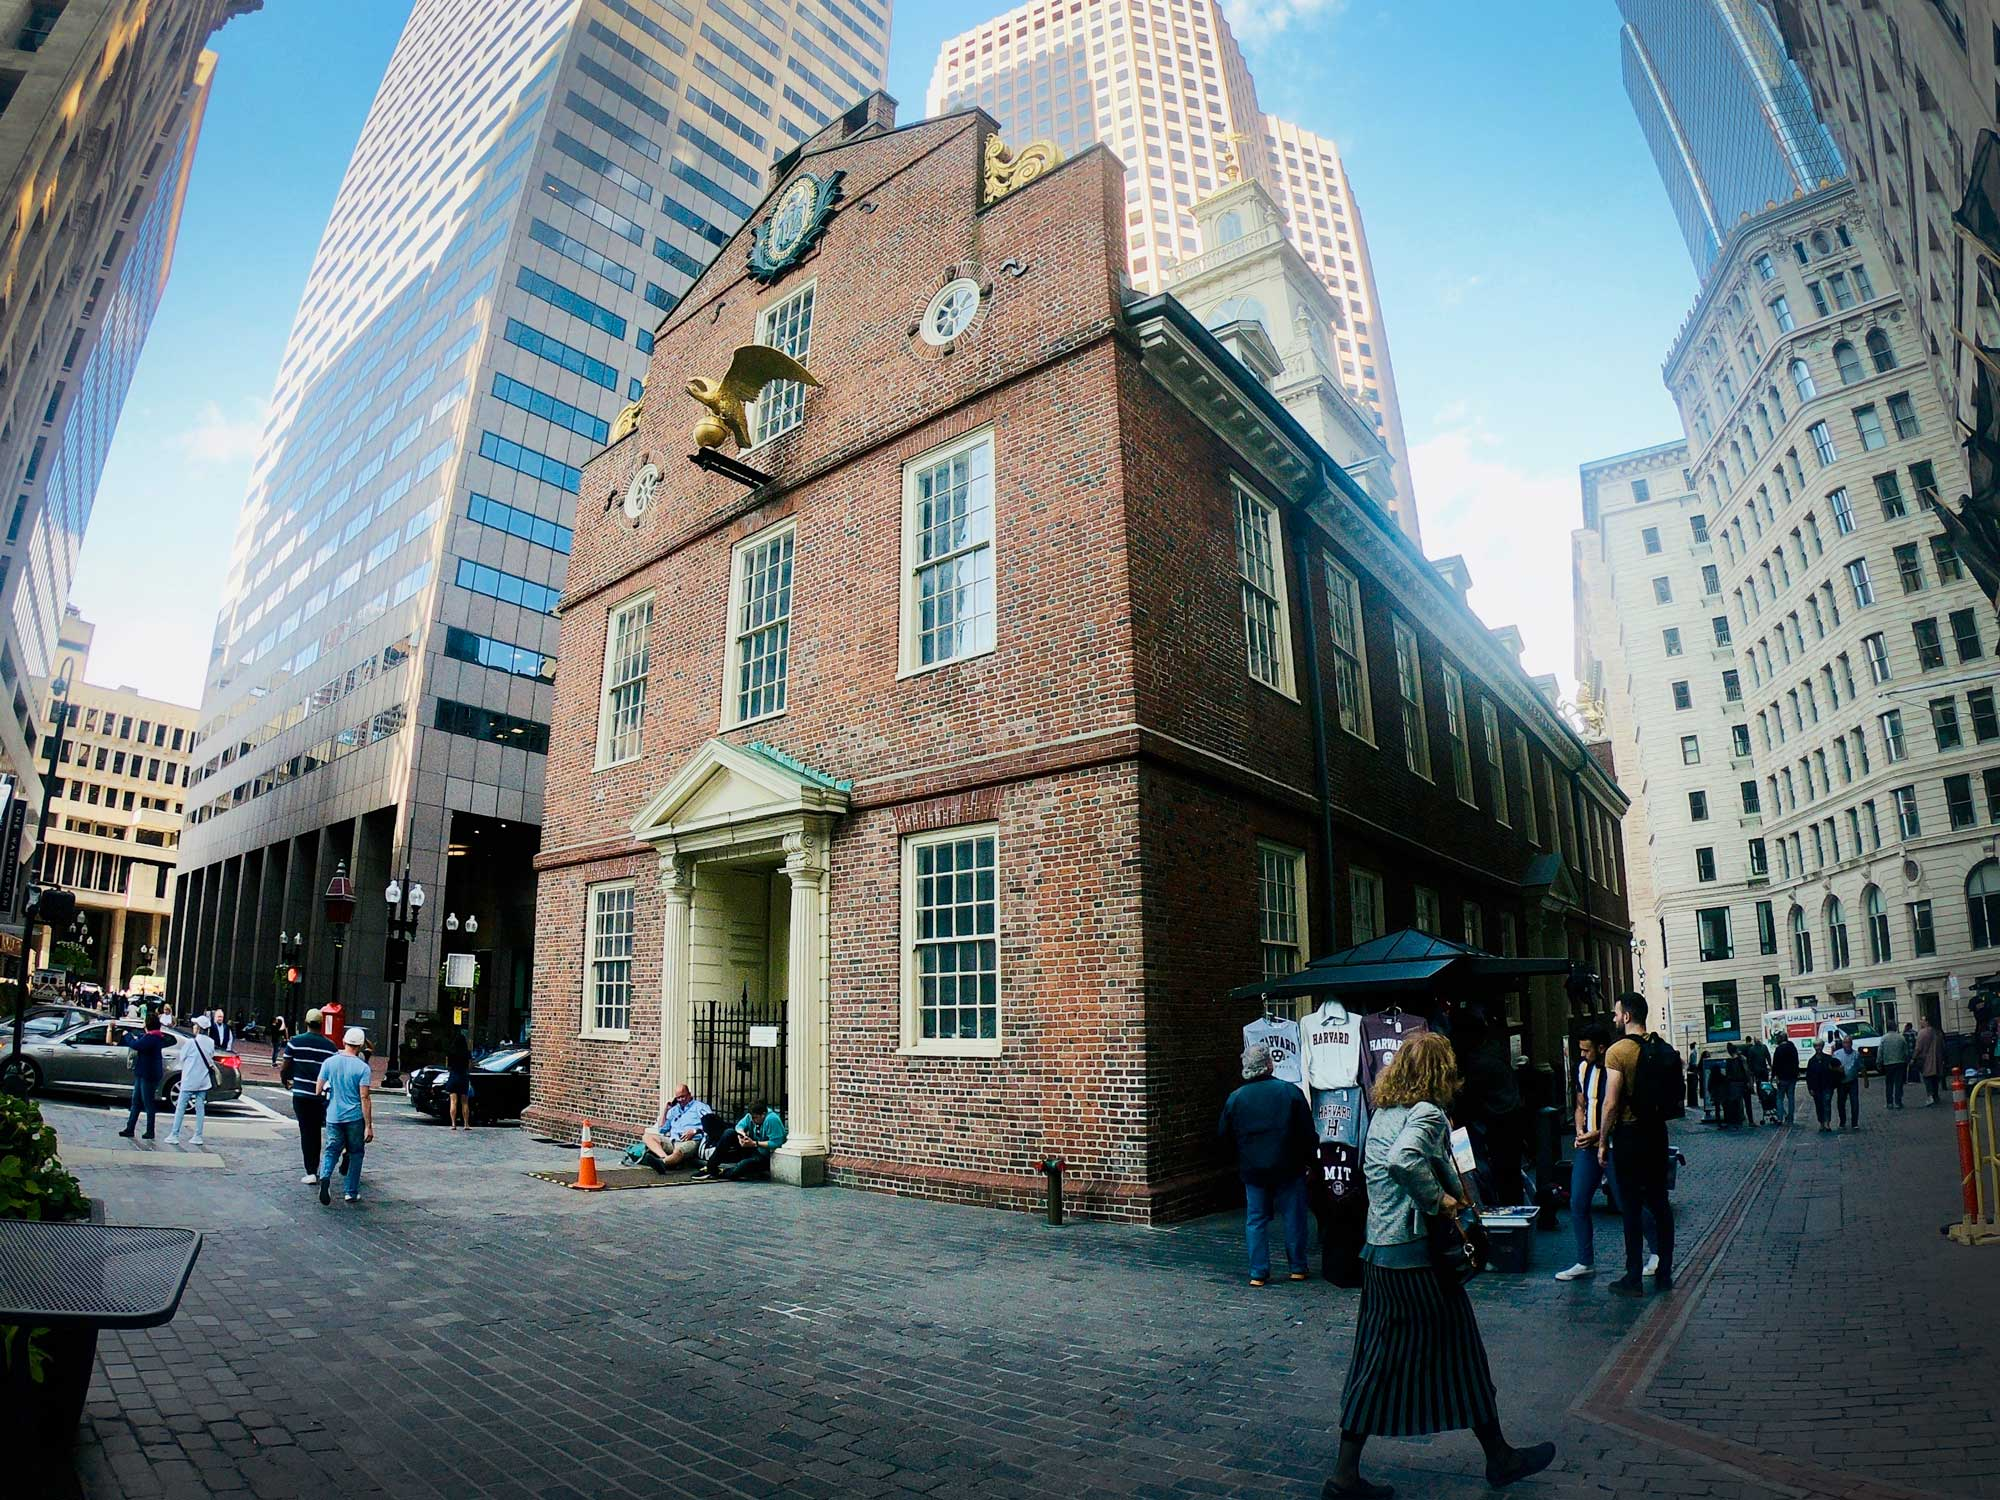 Exterior brick view of Old State House Museum on Freedom Trail in Boston, Massachusetts